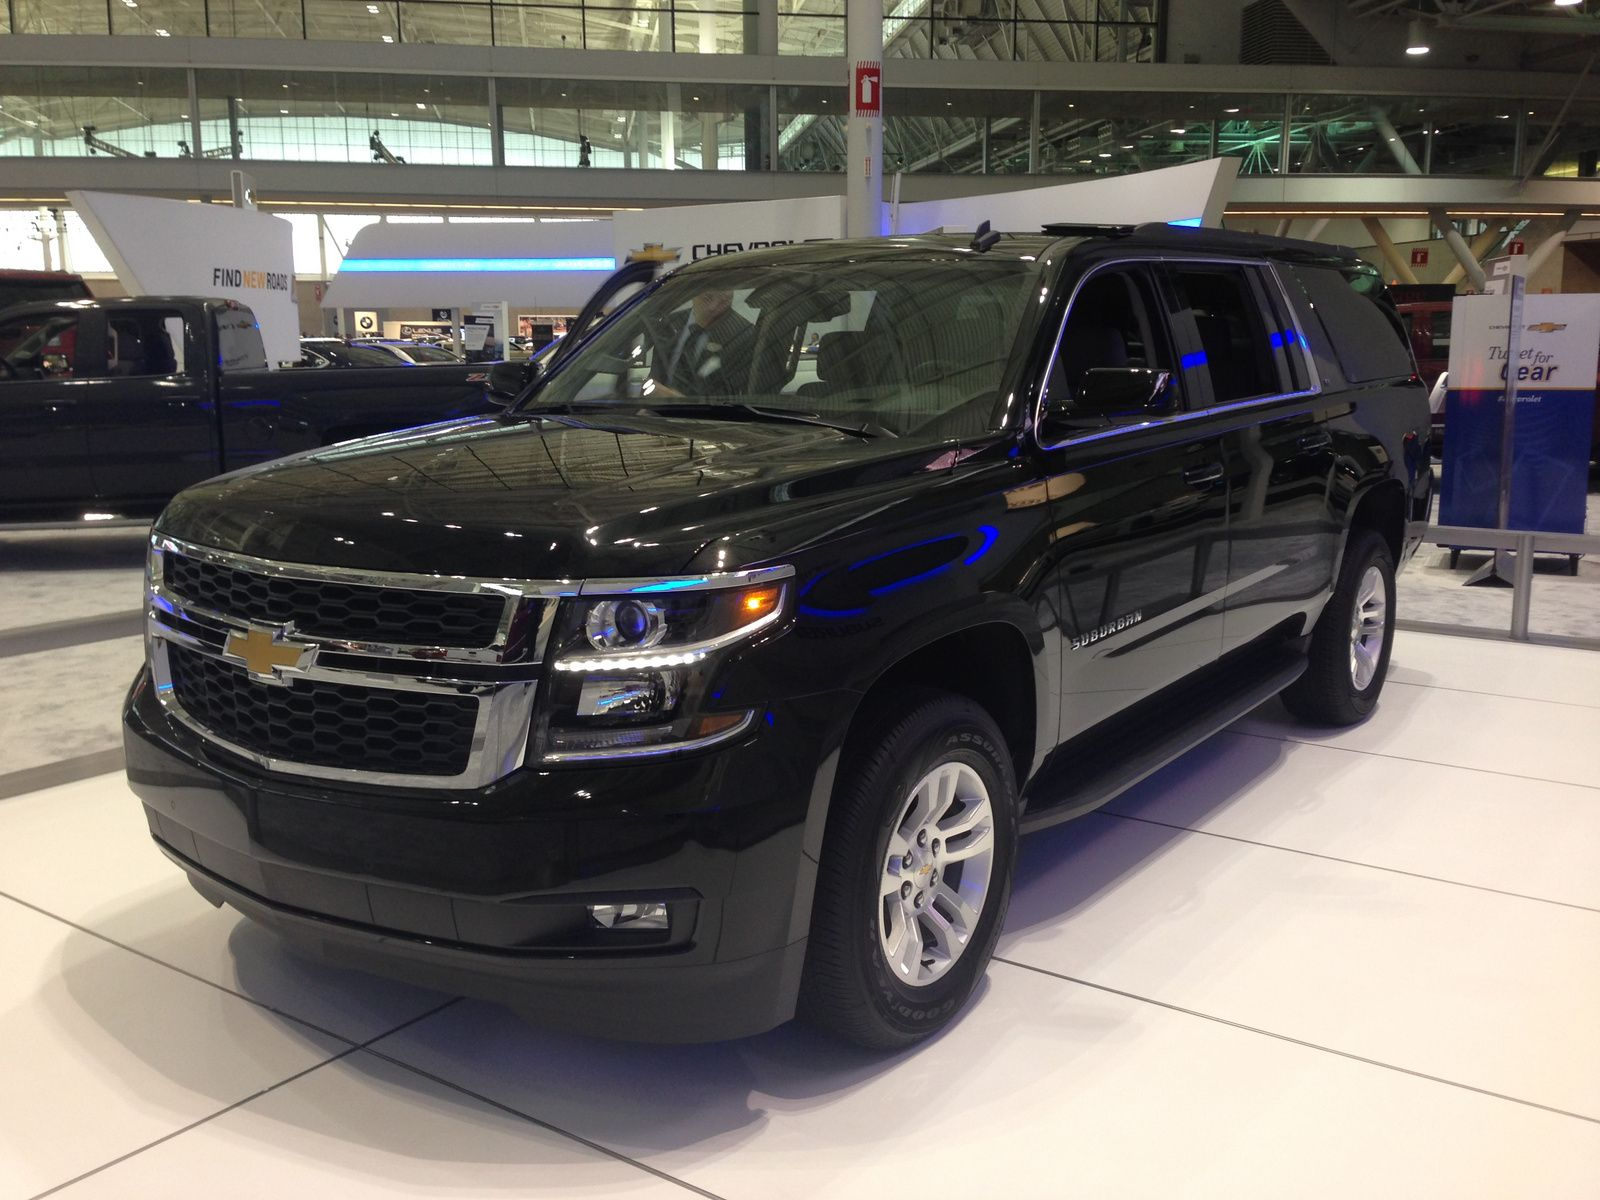 Fabulous chevrolet tahoe 2016 image recent assortment